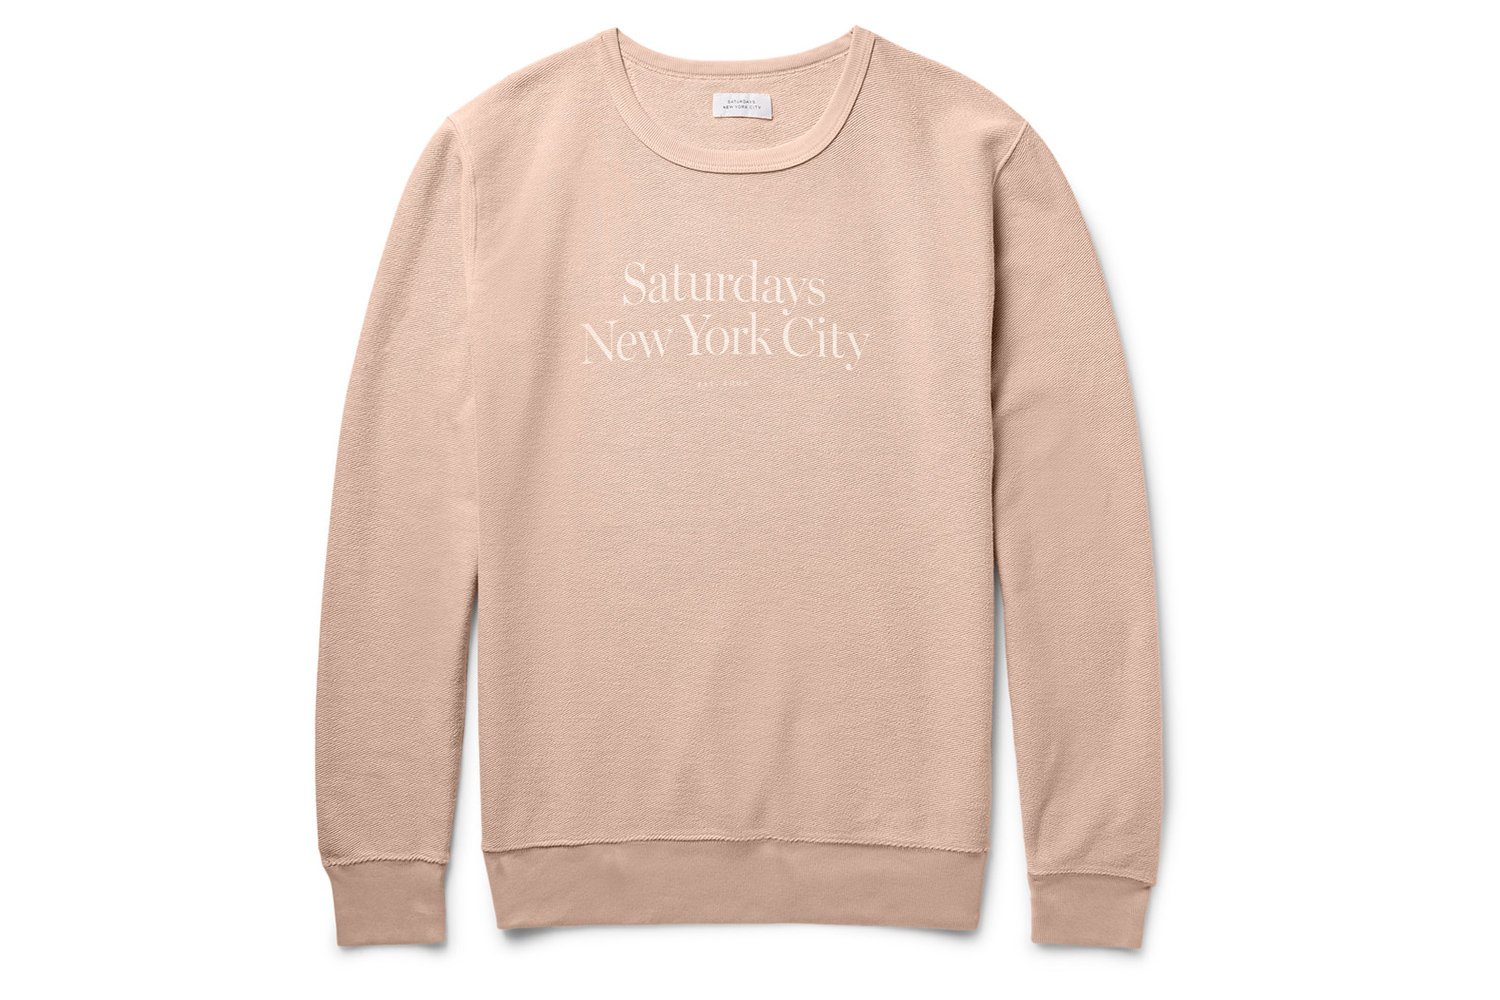 MR PORTER x Saturdays NYC Capsule Collection